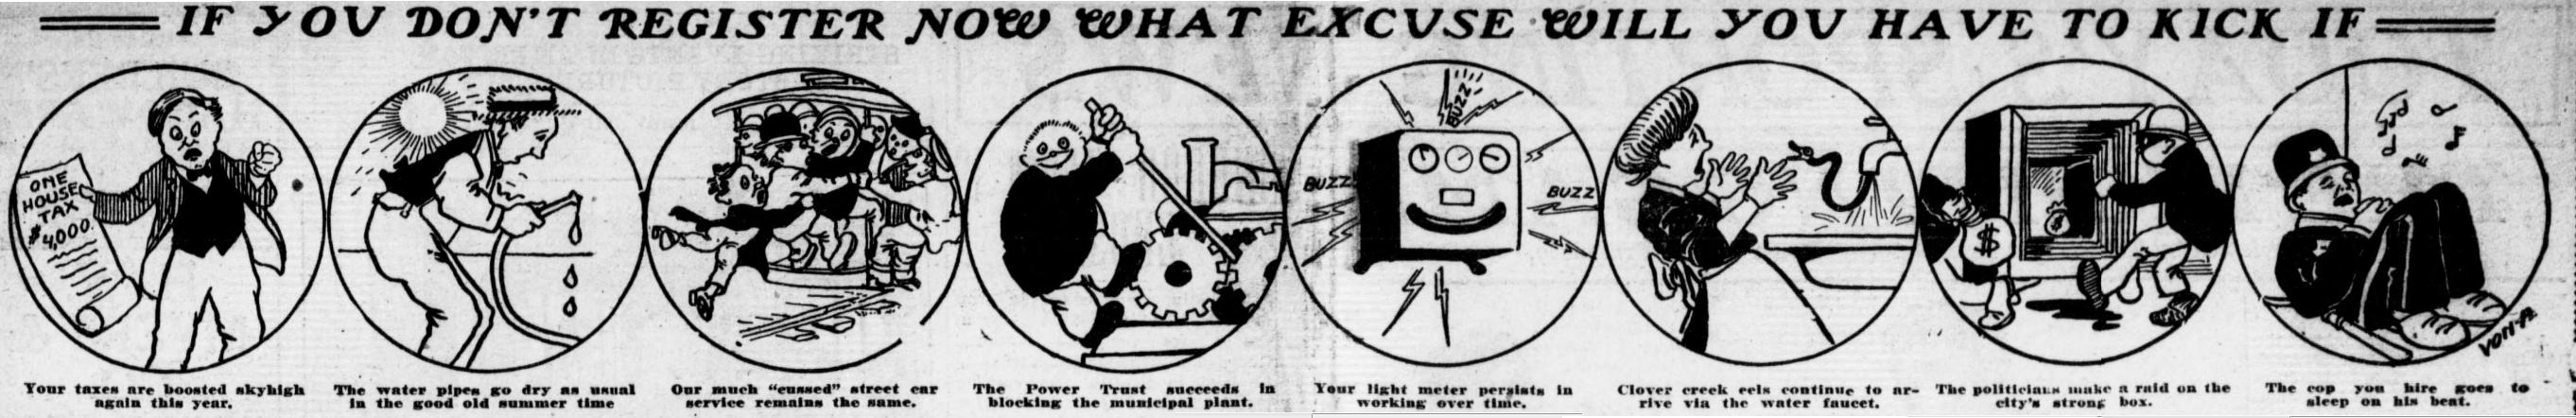 Political_cartoon_about_the_importance_of_voting_(Tacoma_Times,_March_12_1910)